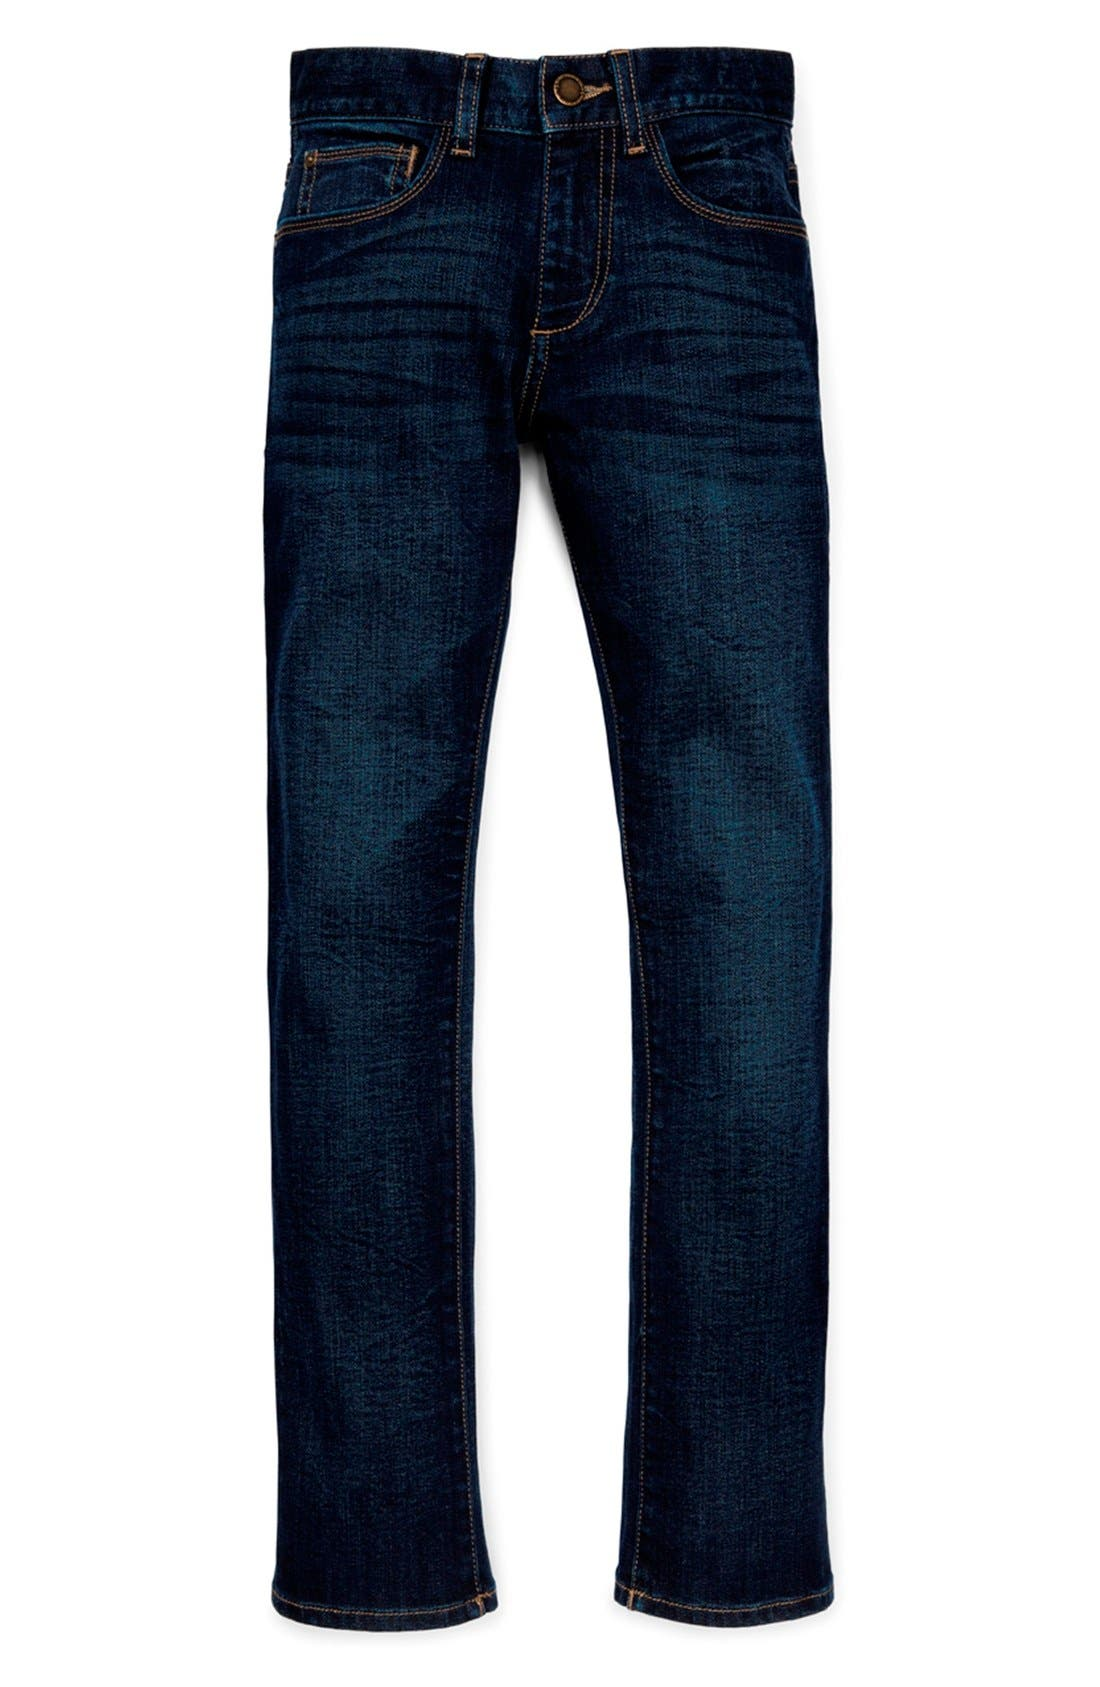 'Brady' Slim Fit Jeans,                             Main thumbnail 1, color,                             FERRET